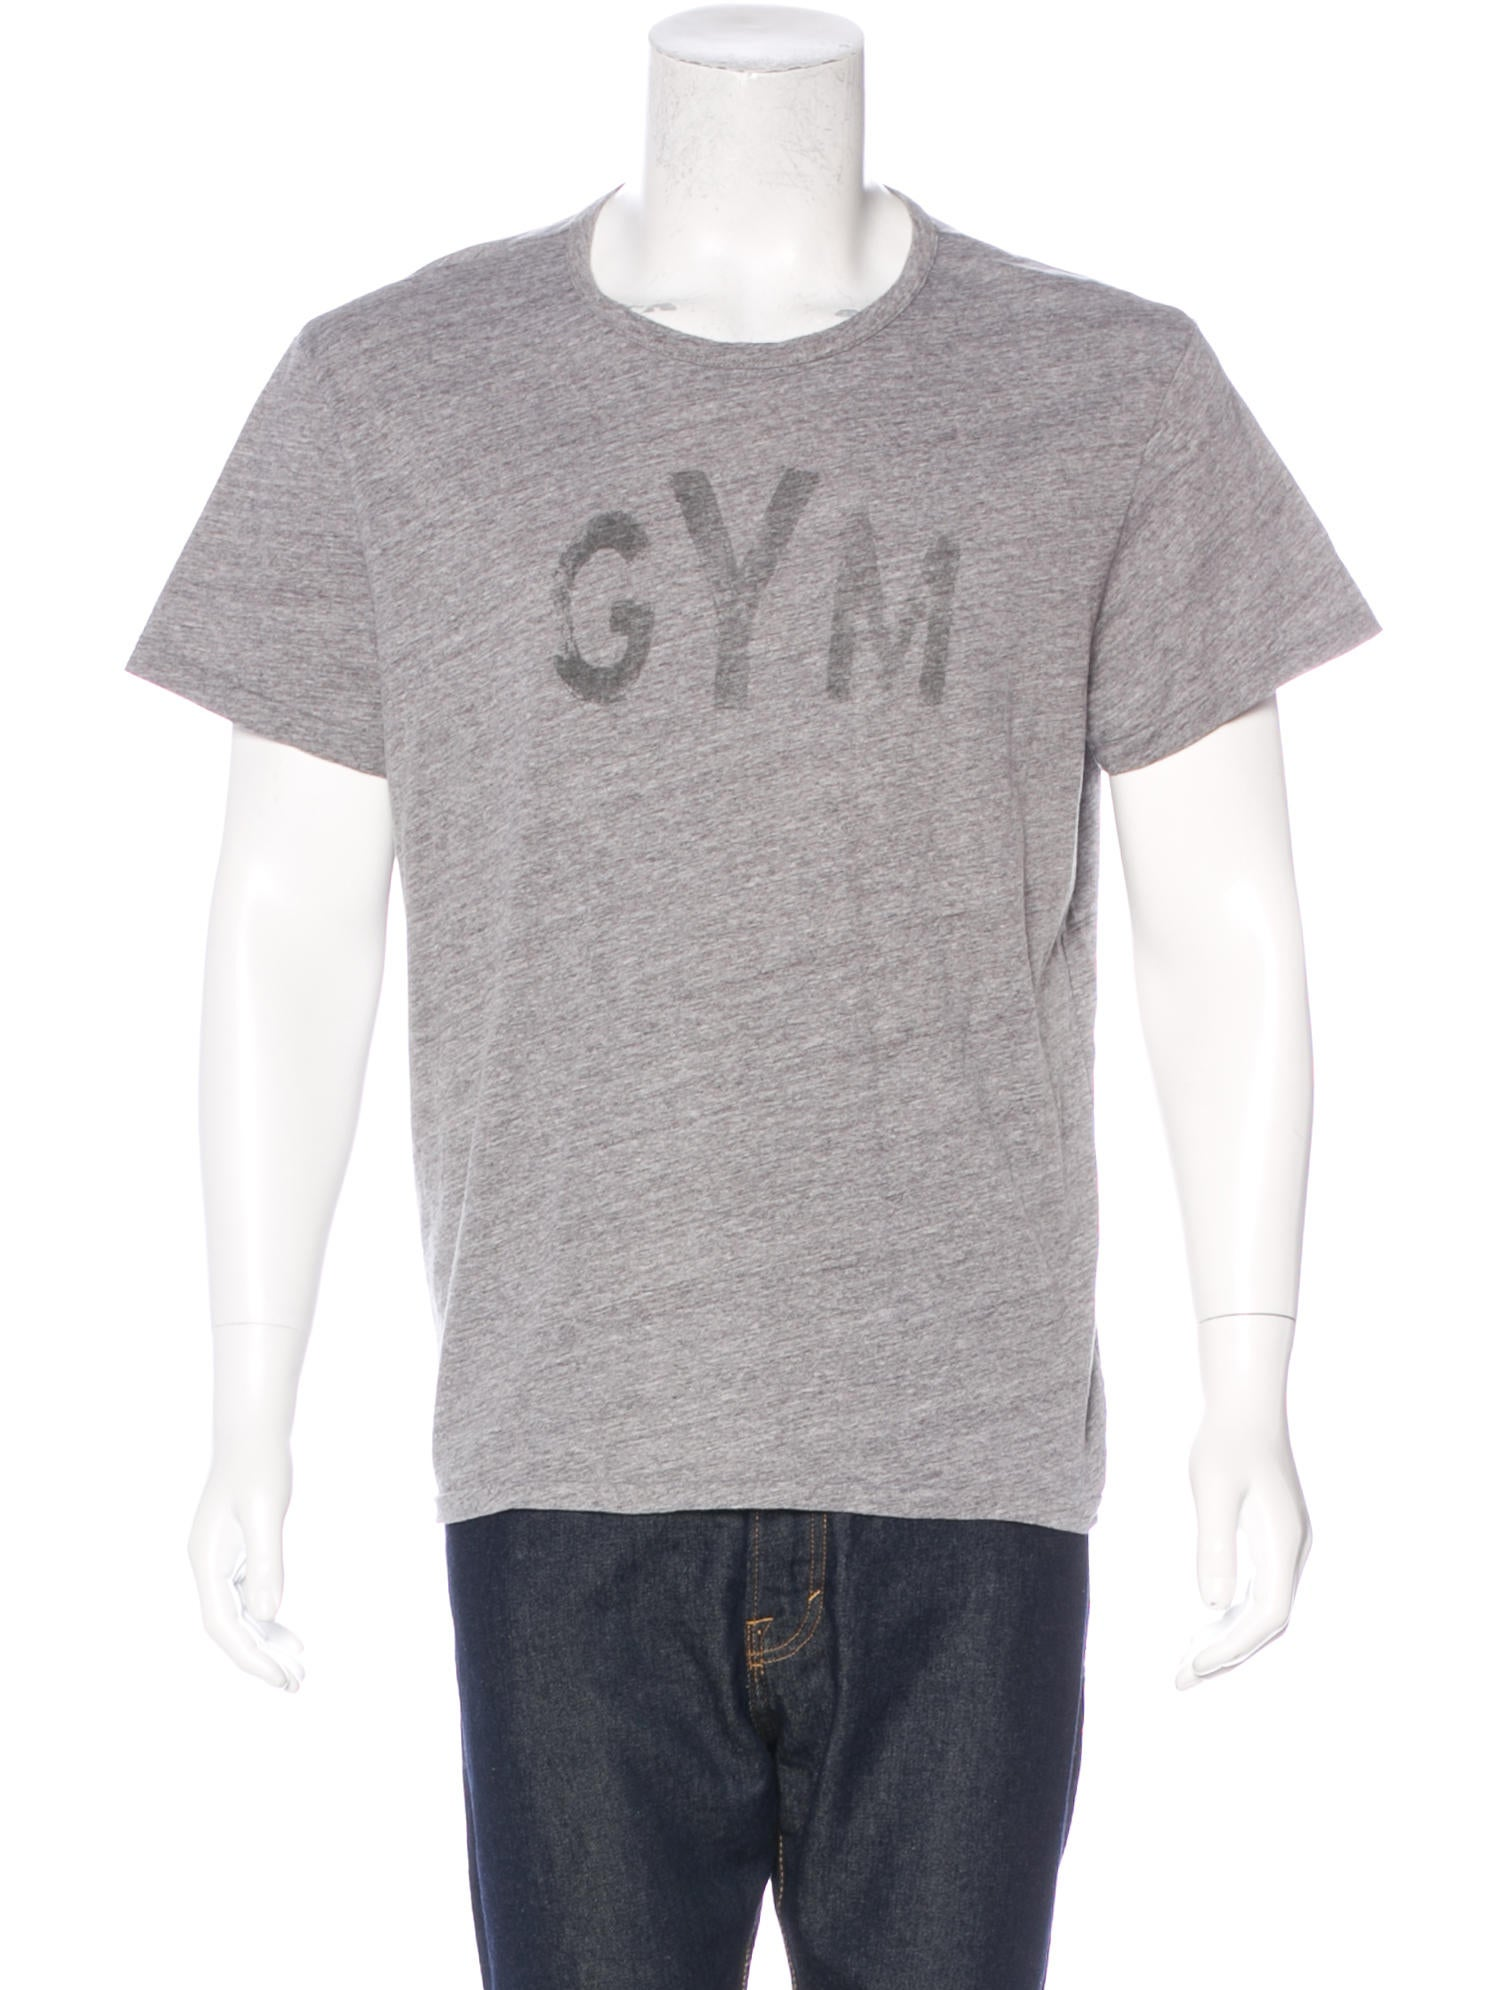 Rrl co gym printed t shirt clothing wrrll20447 for Gym printed t shirts